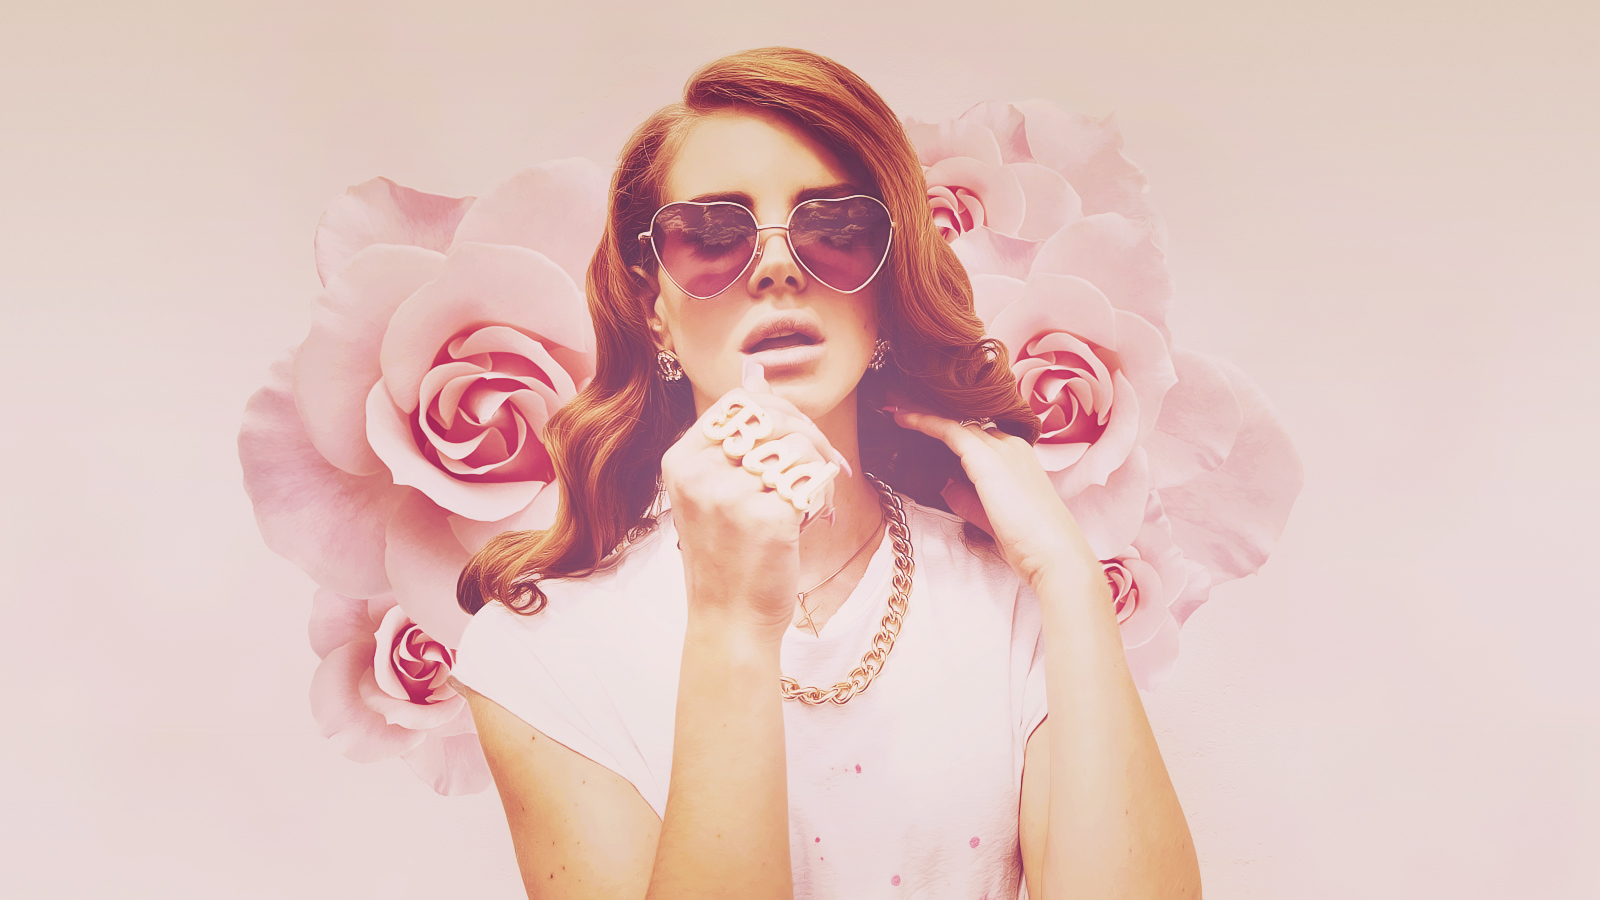 lana del rey wallpaper and background 1600x900 id 495107